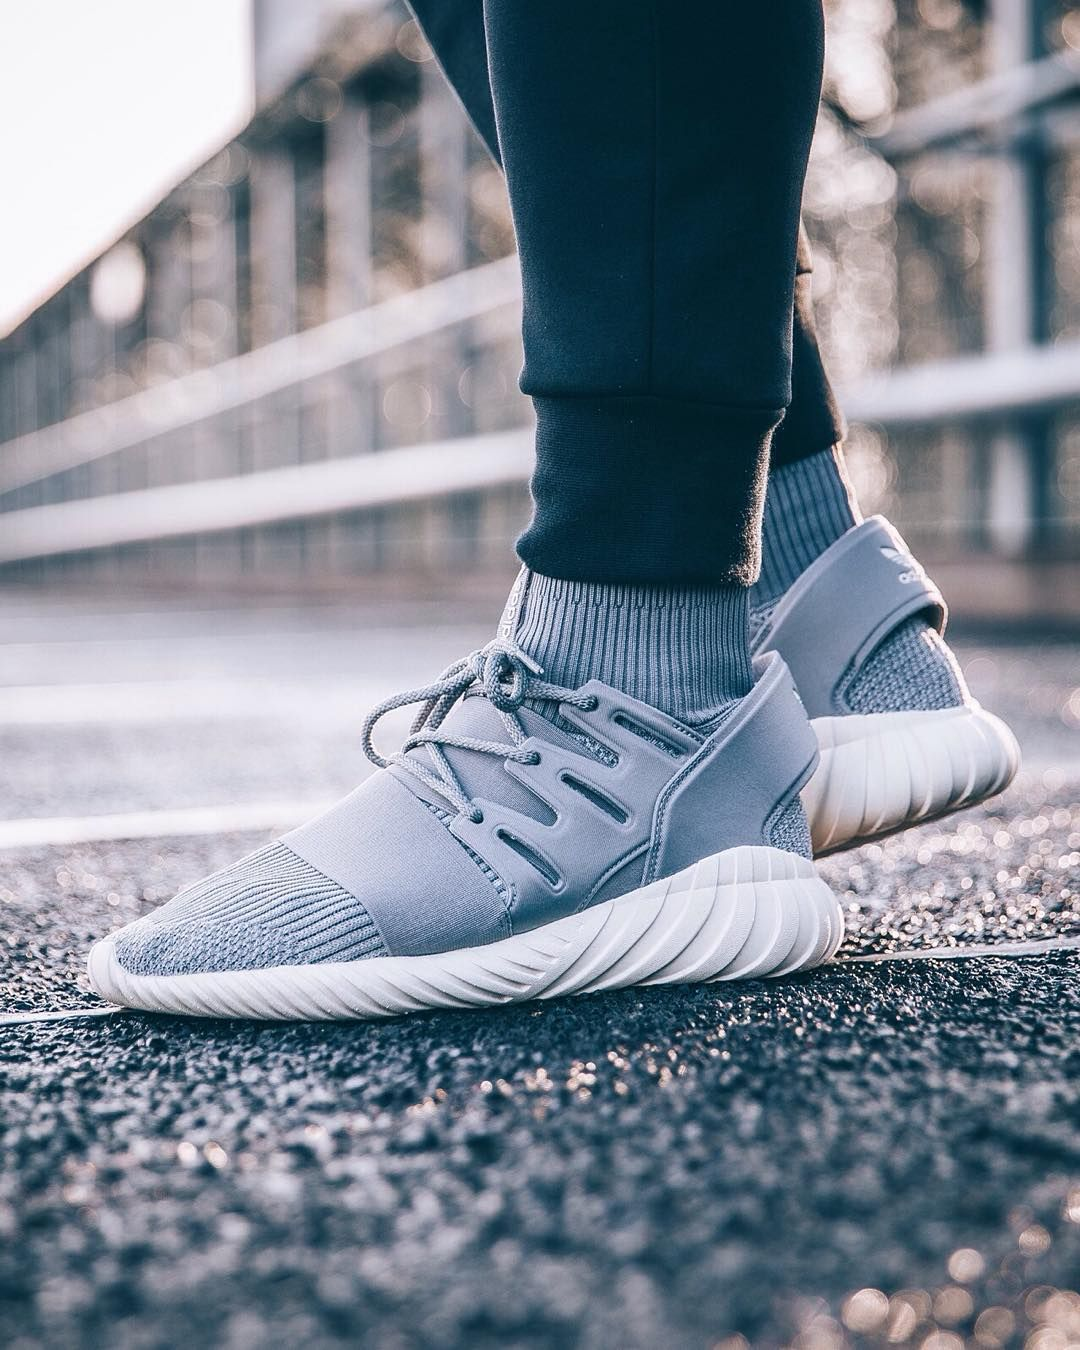 Adidas Tubular Radial adidas Red Rat